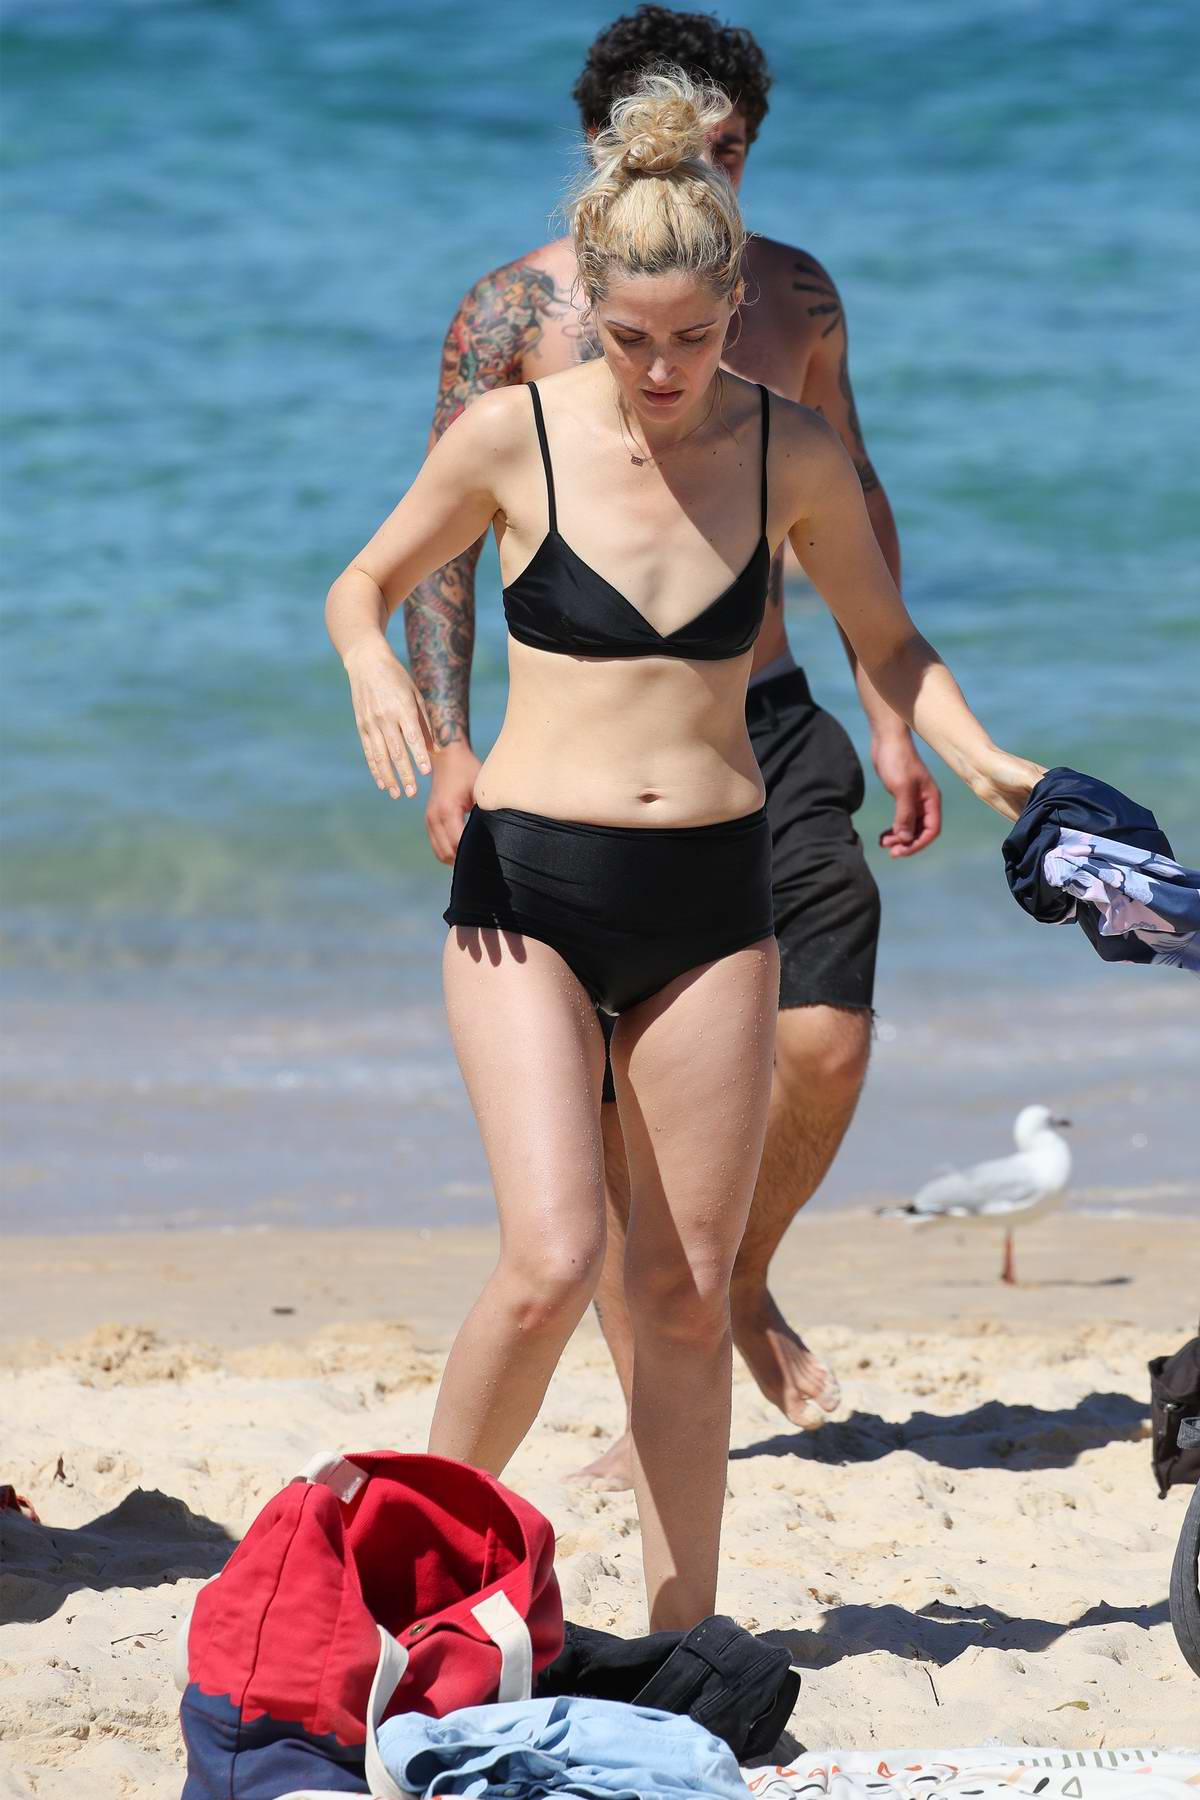 Rose Byrne seen wearing a black bikini during a beach day with husband Bobby Cannavale at Bondi Beach in Sydney, Australia